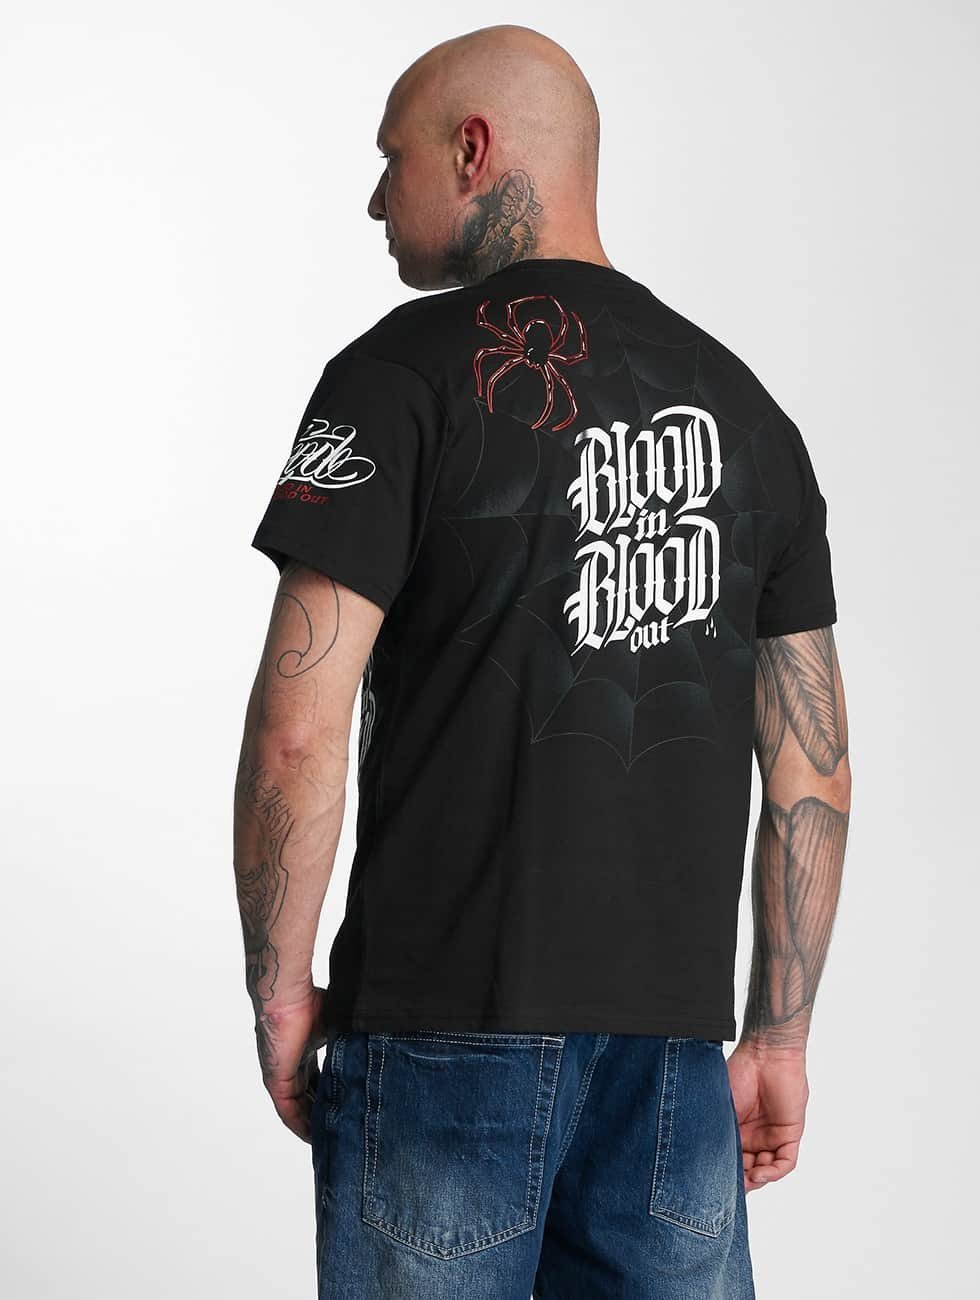 Blood In Blood Out T-Shirt Out Ranio Negro black